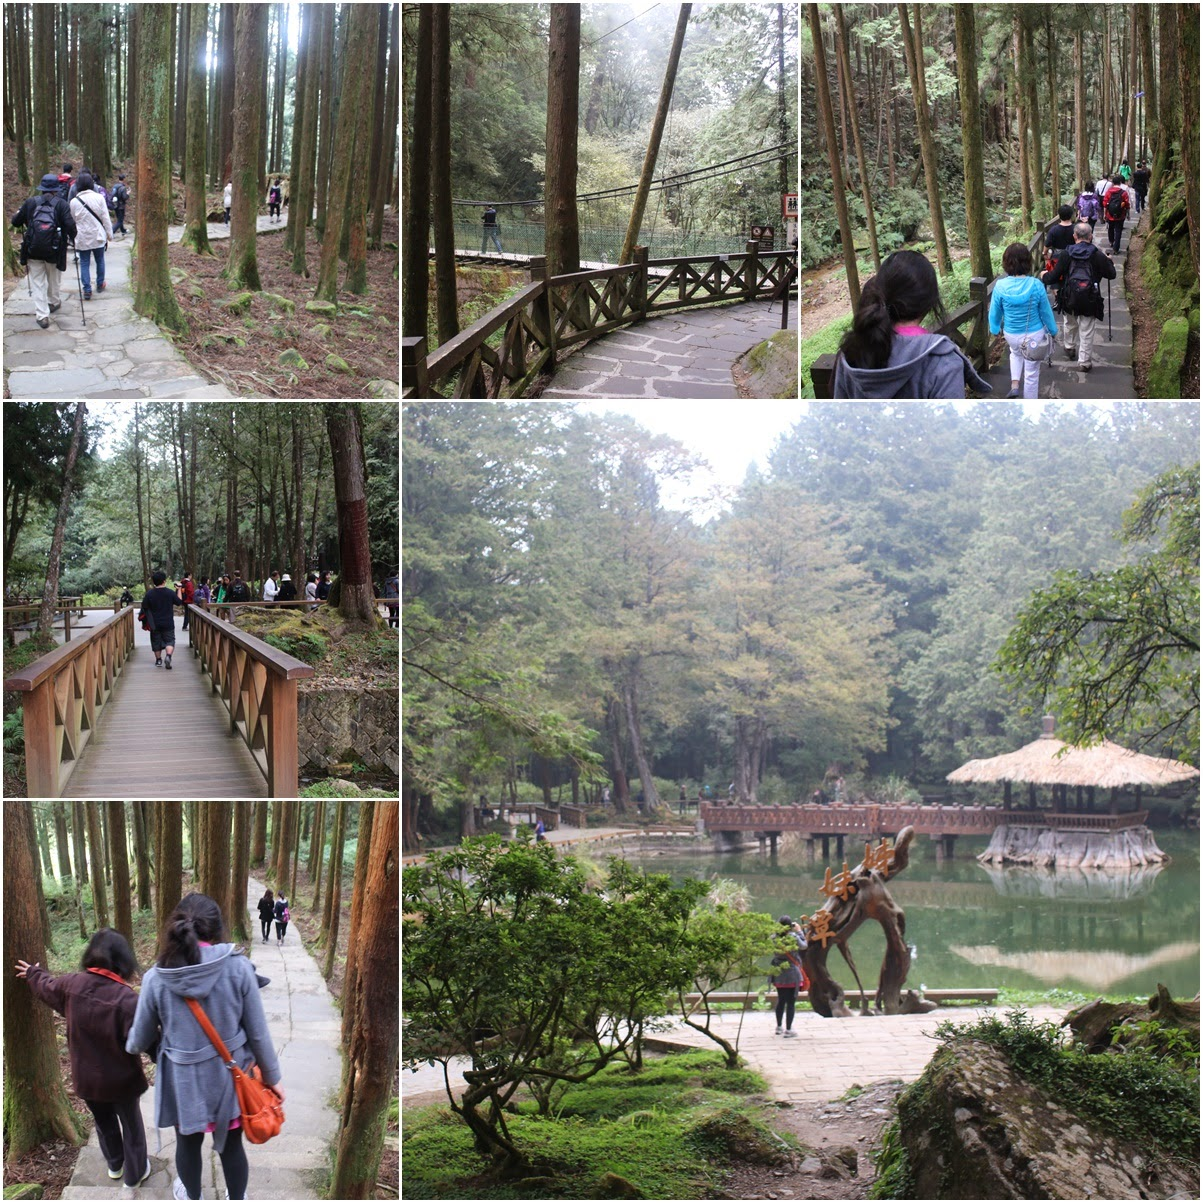 Hiking along forest scenic view of Alishan Sacred Tree at Alishan Mountain in Chiayi County of Taiwan